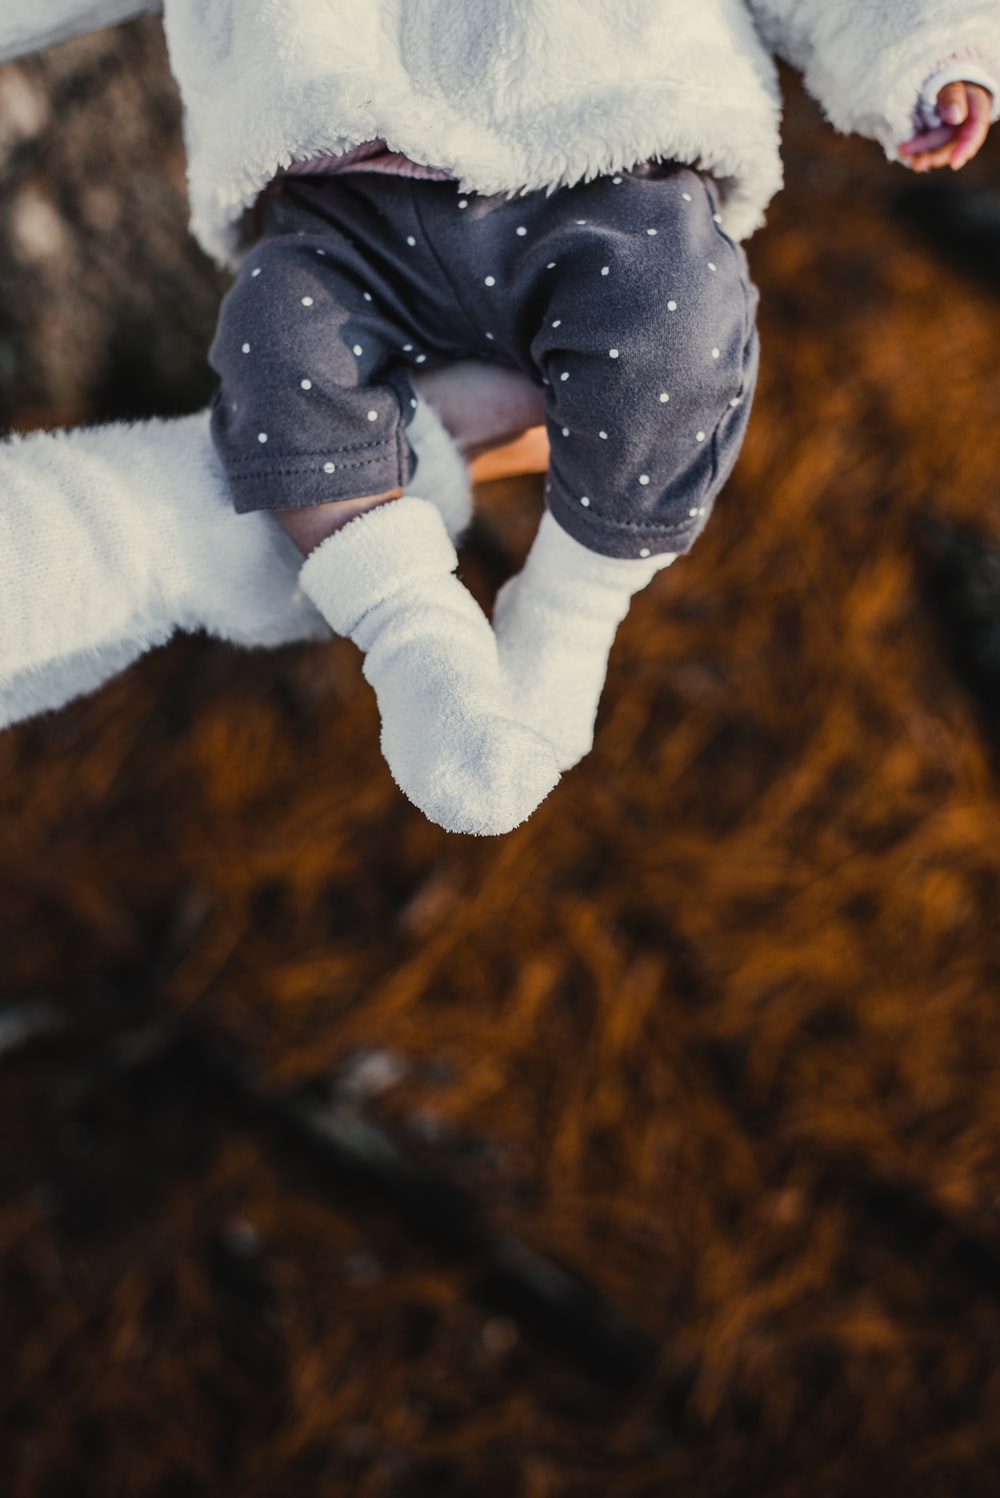 person carrying baby close-up photo